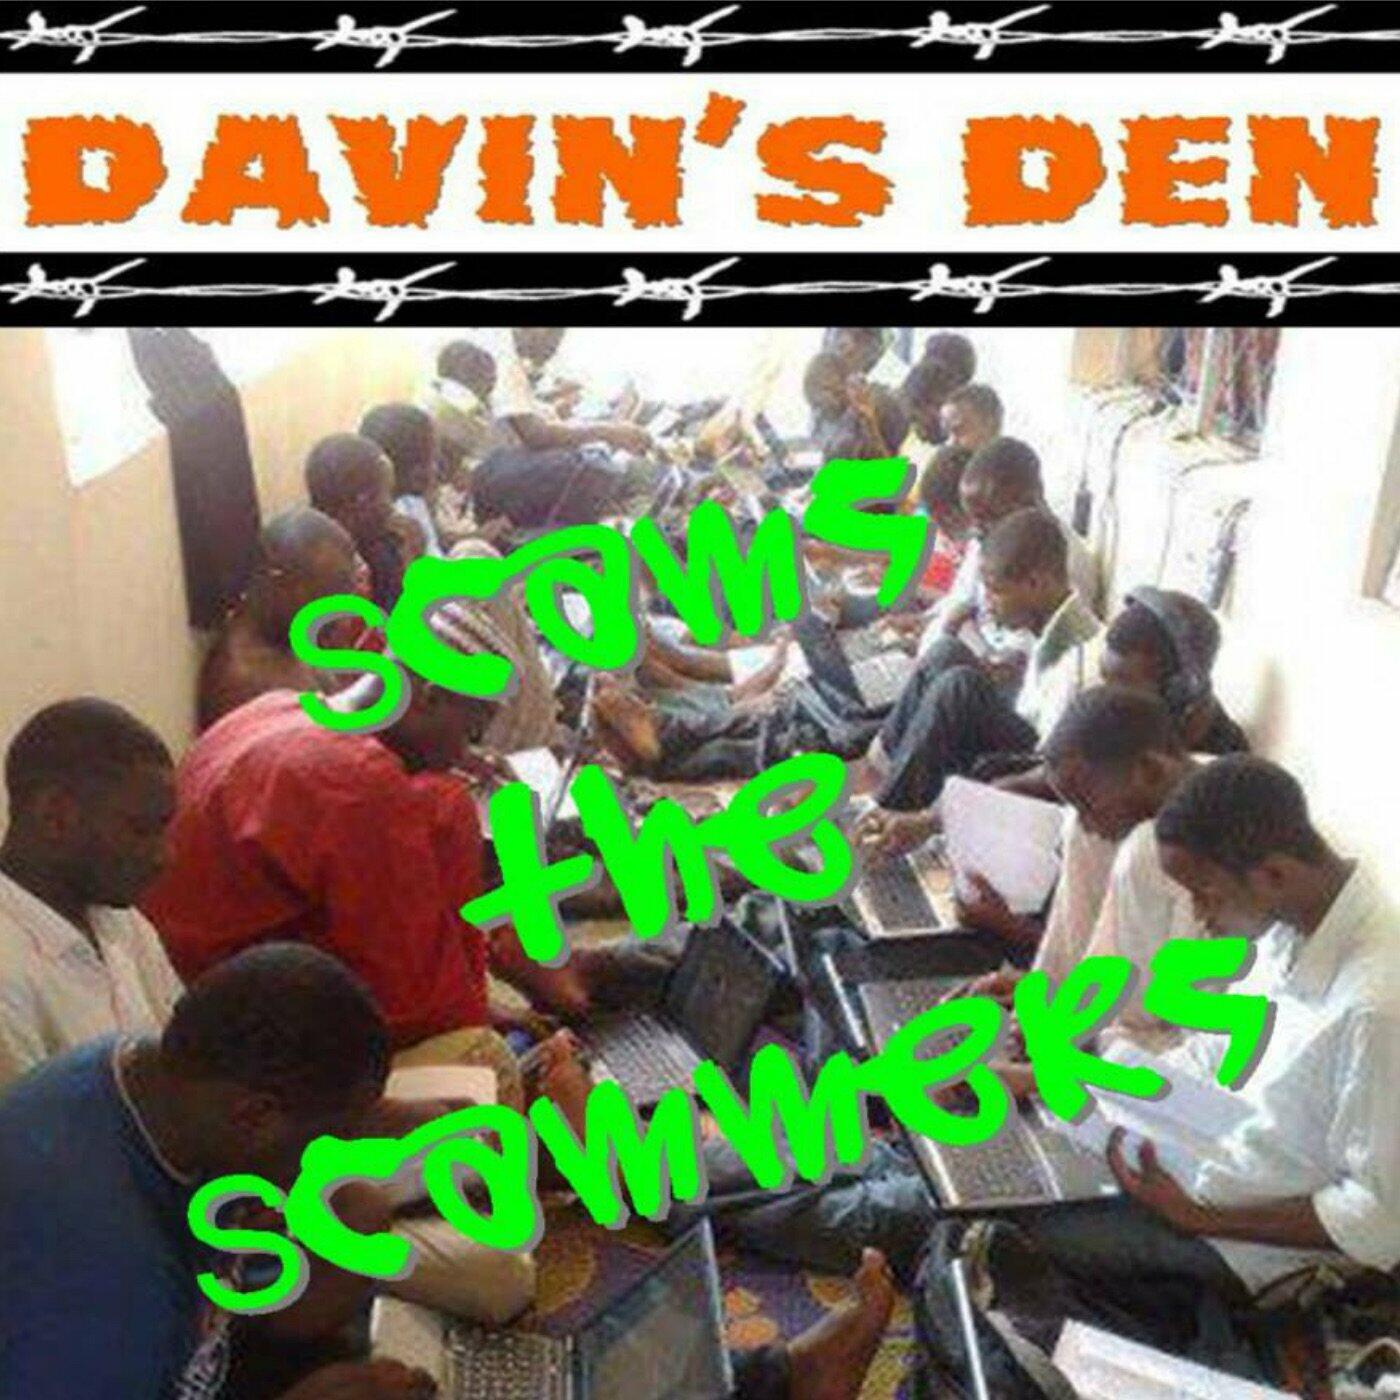 Davin's Den Scams the Scammers